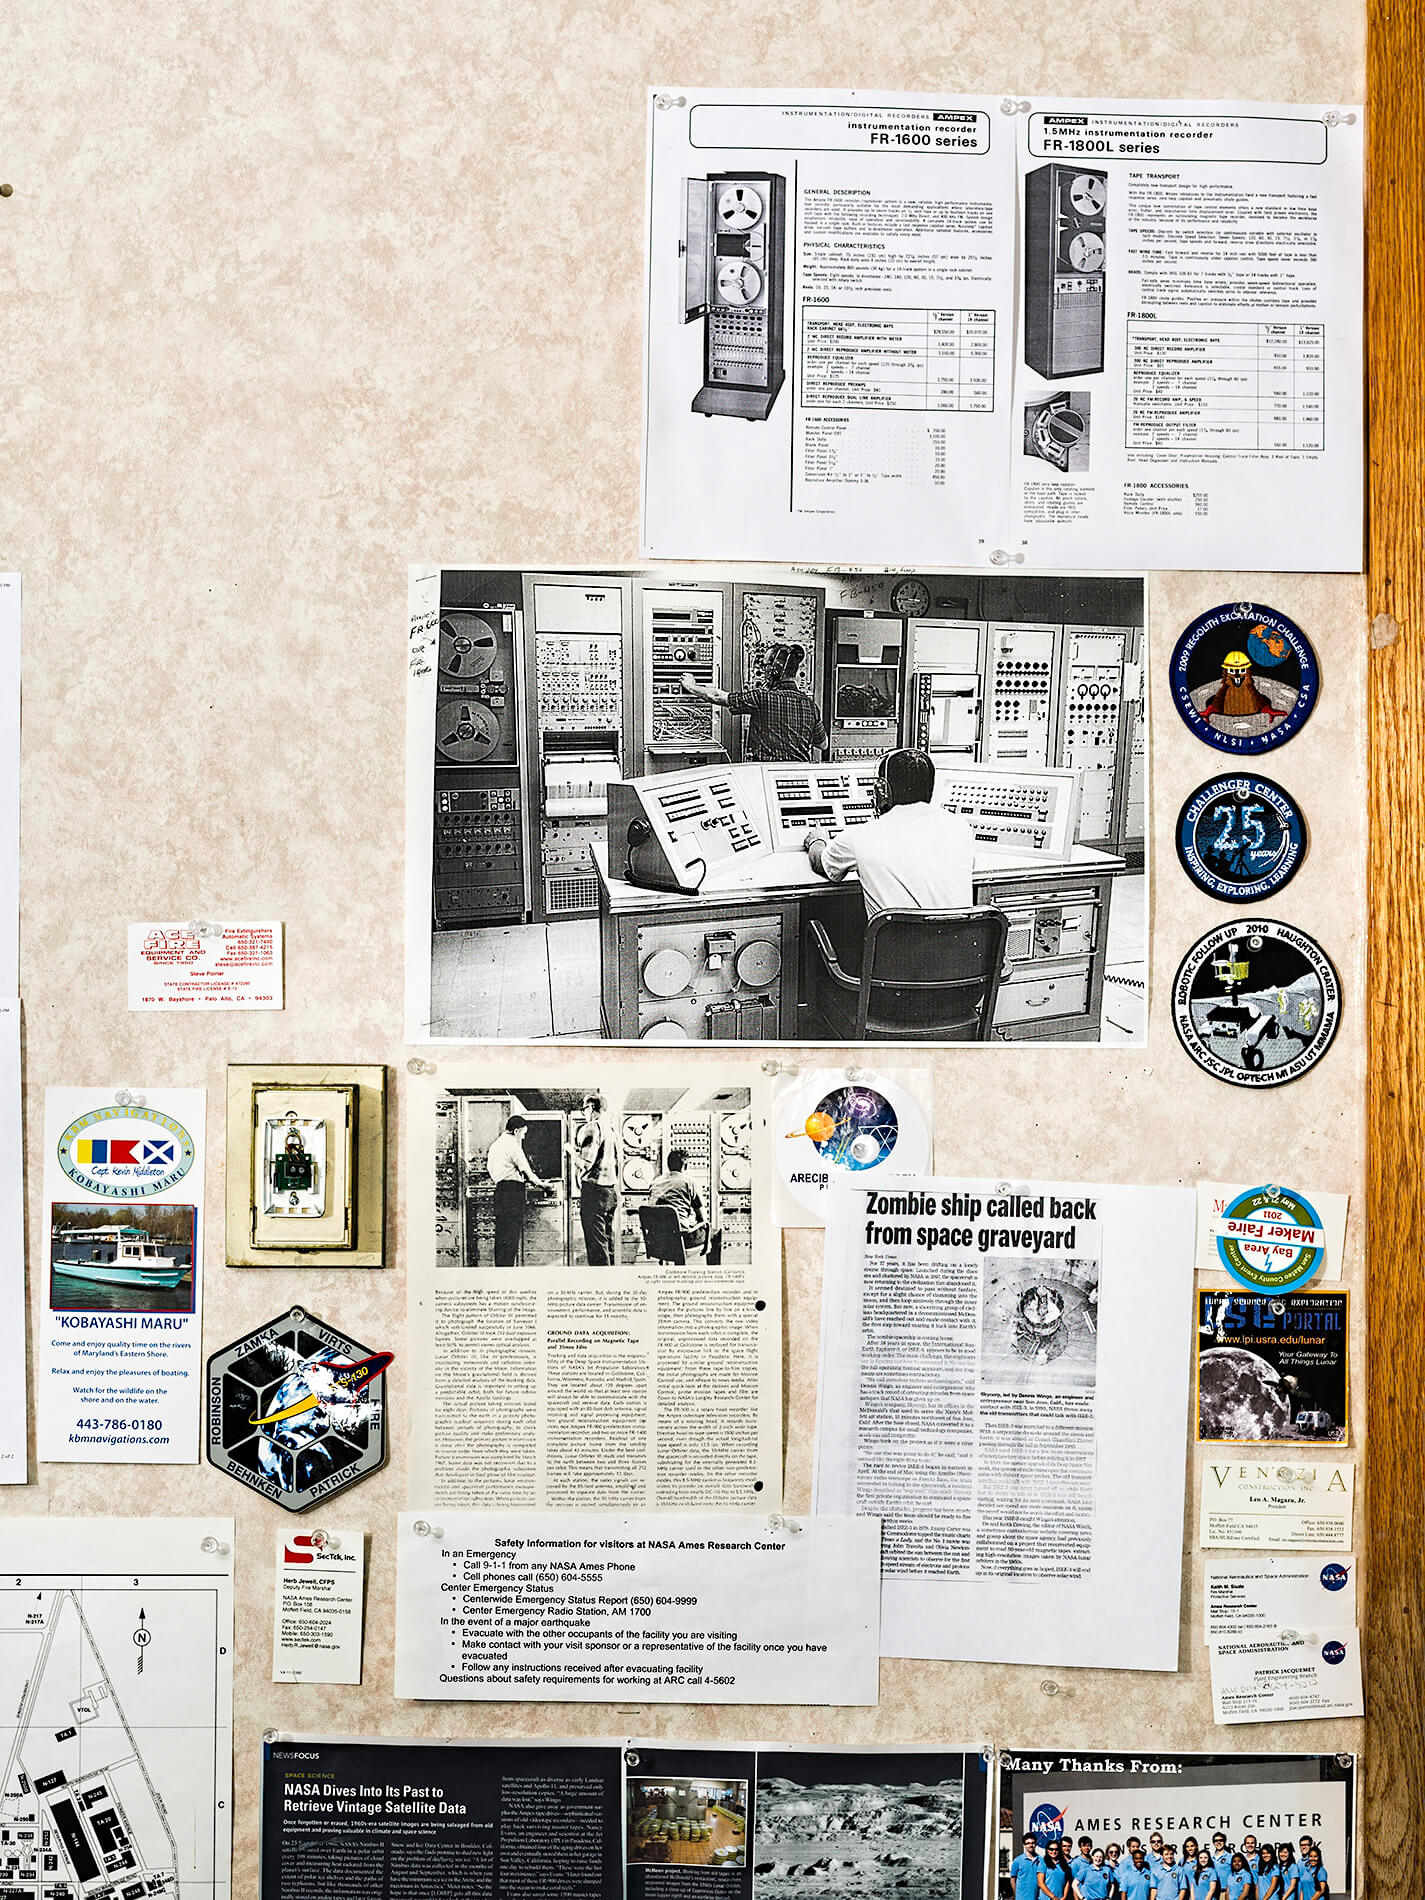 Space travel memorabilia and articles